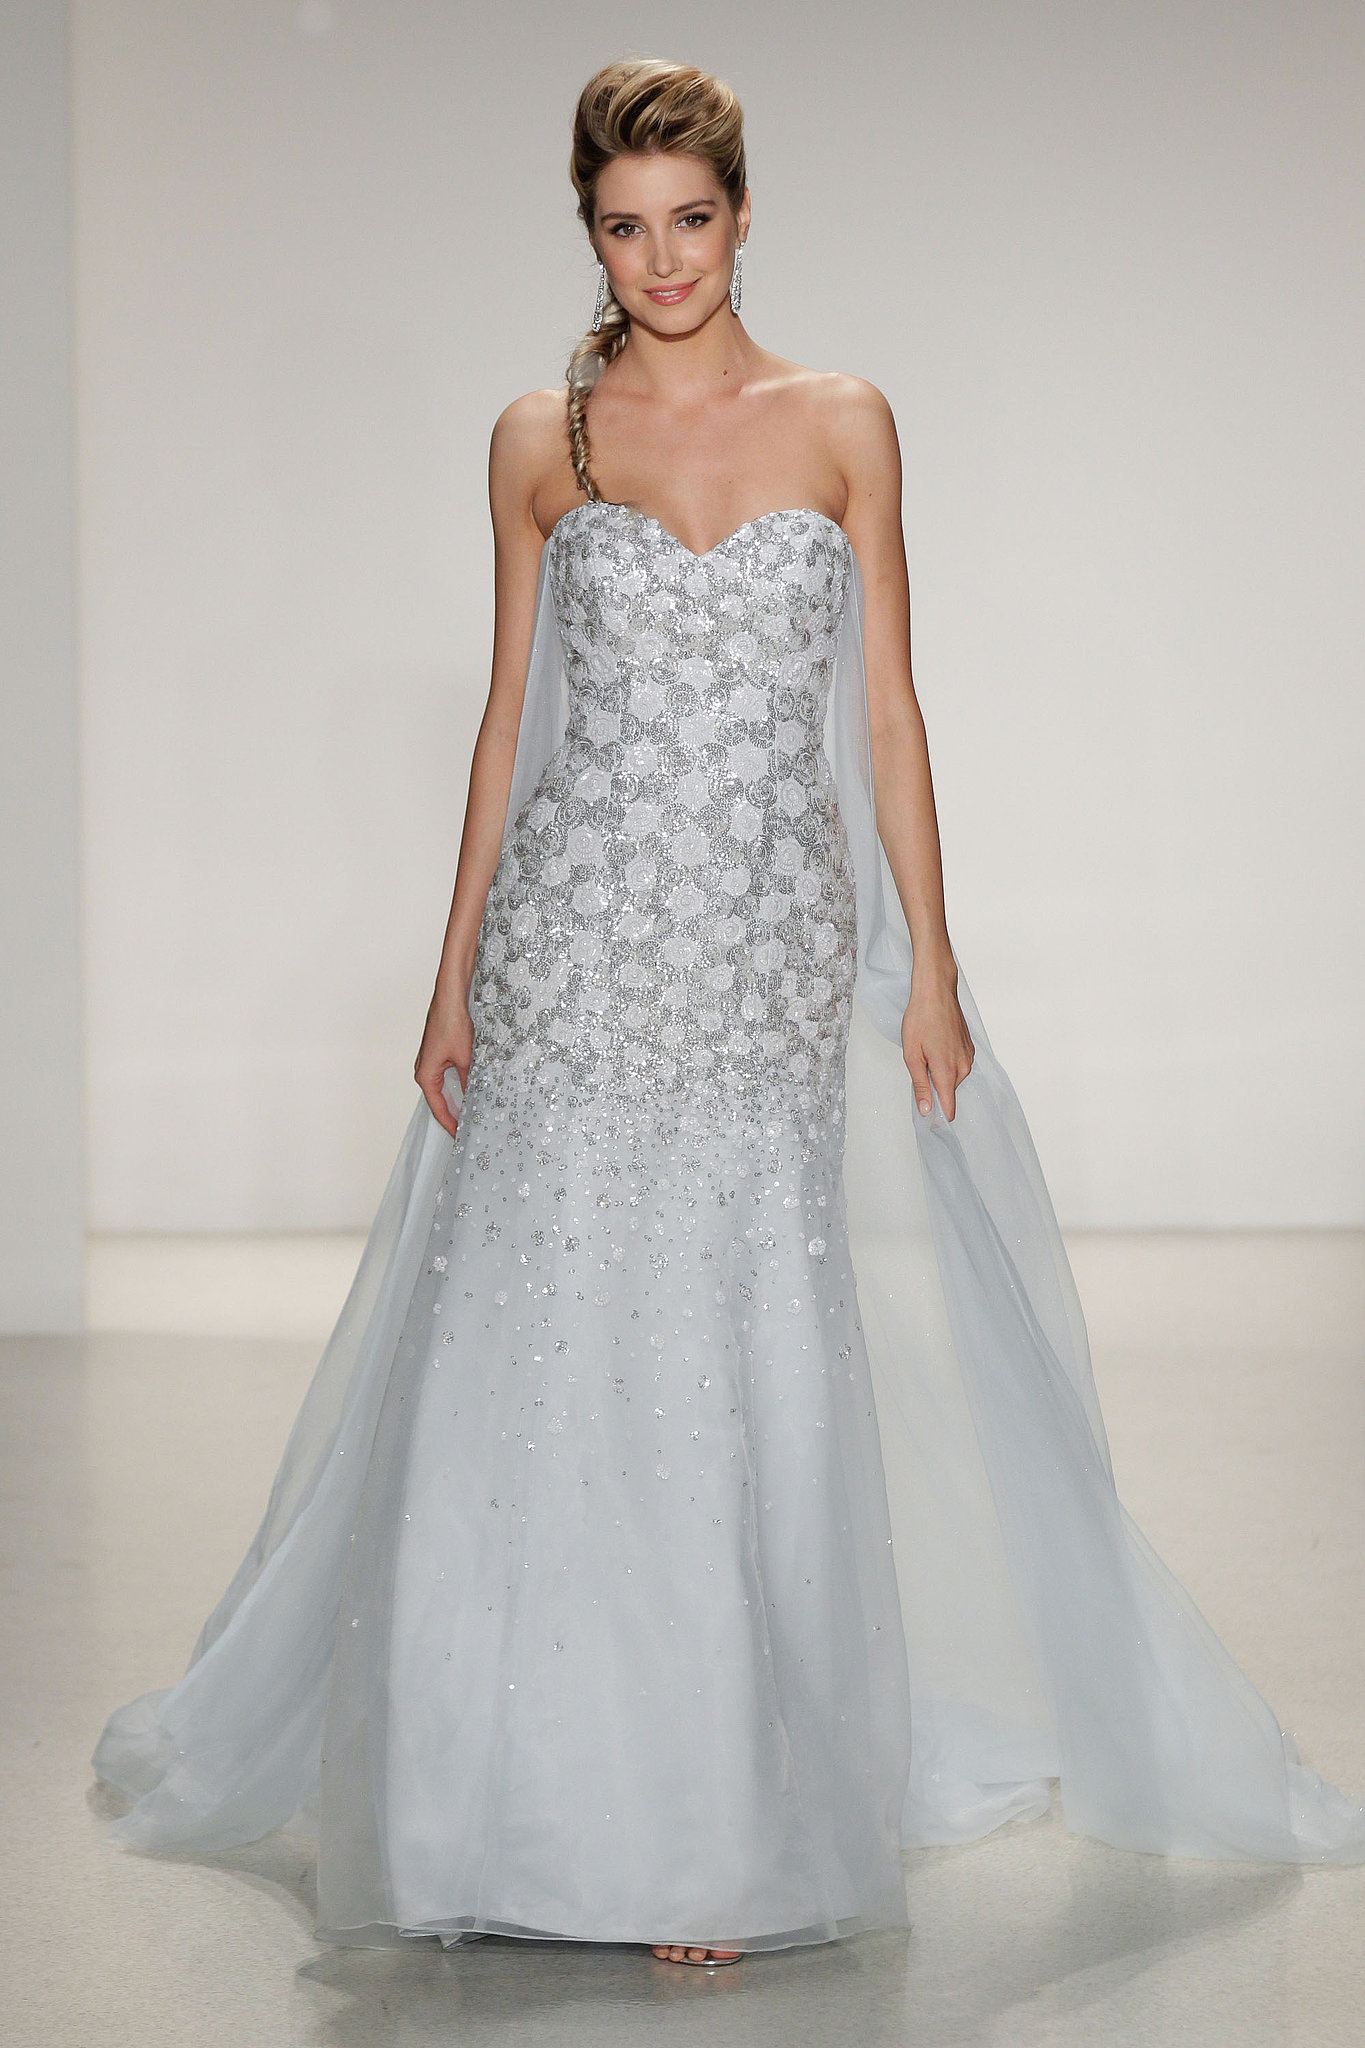 The dress from frozen - It Was Only A Matter Of Time You Can Now See The Real Life Frozen Wedding Dress